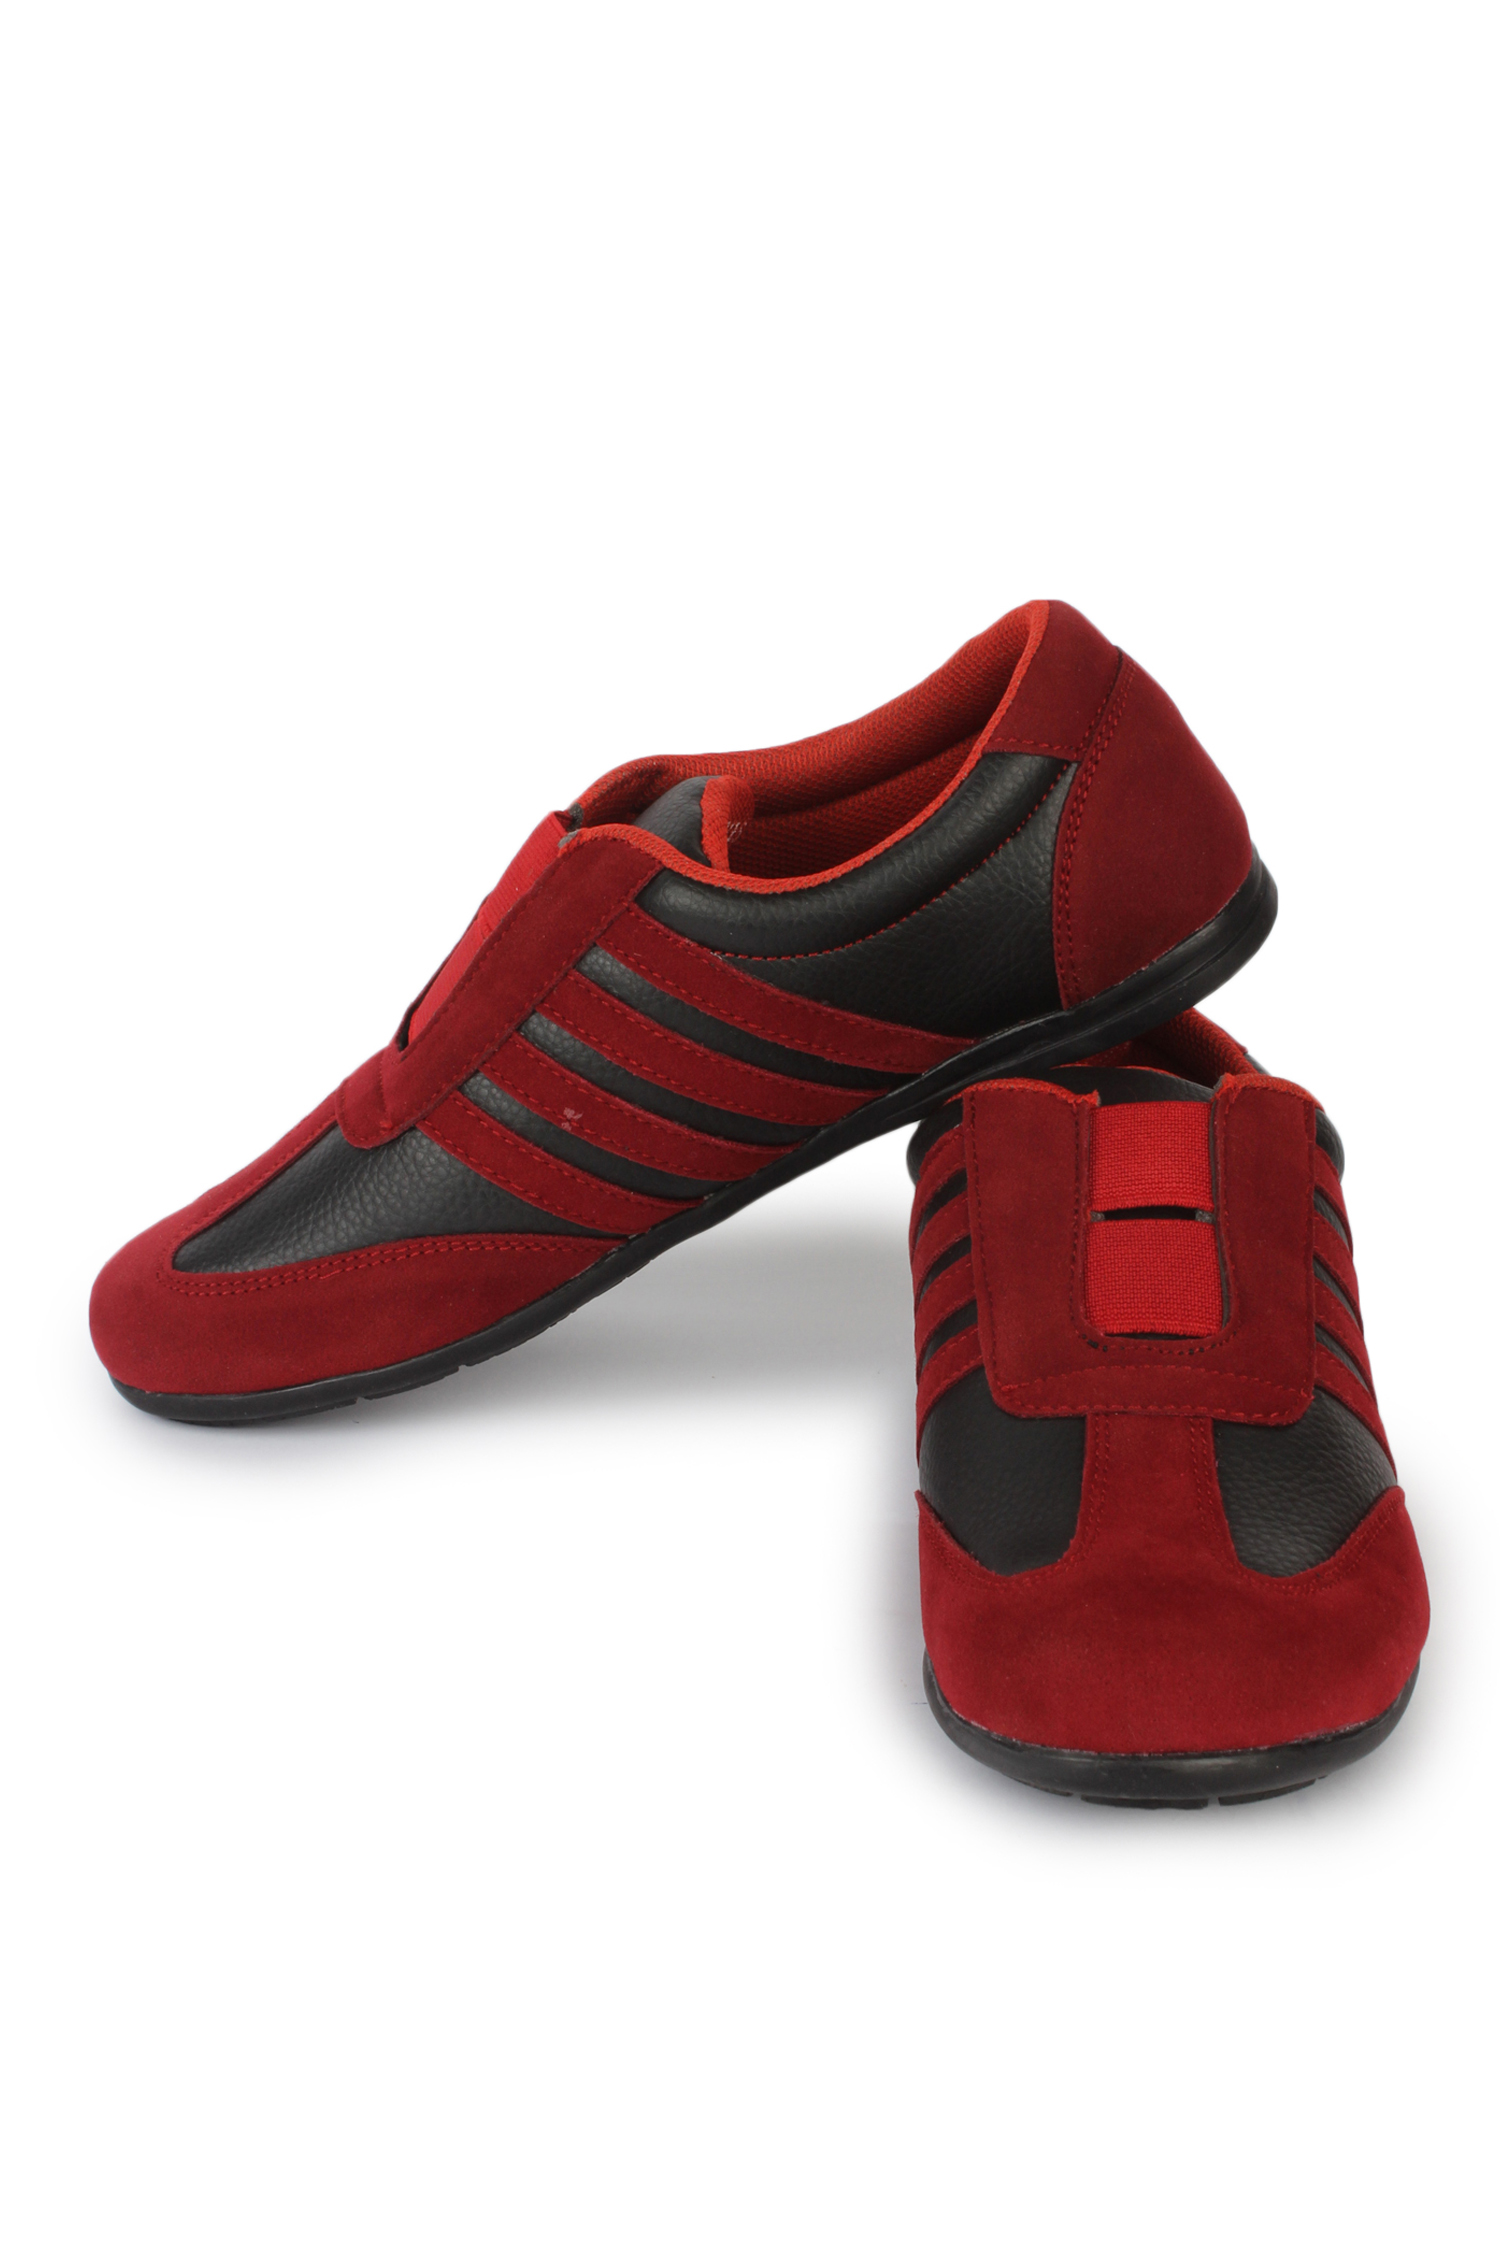 walk sporty casual shoes wwe0301 buy